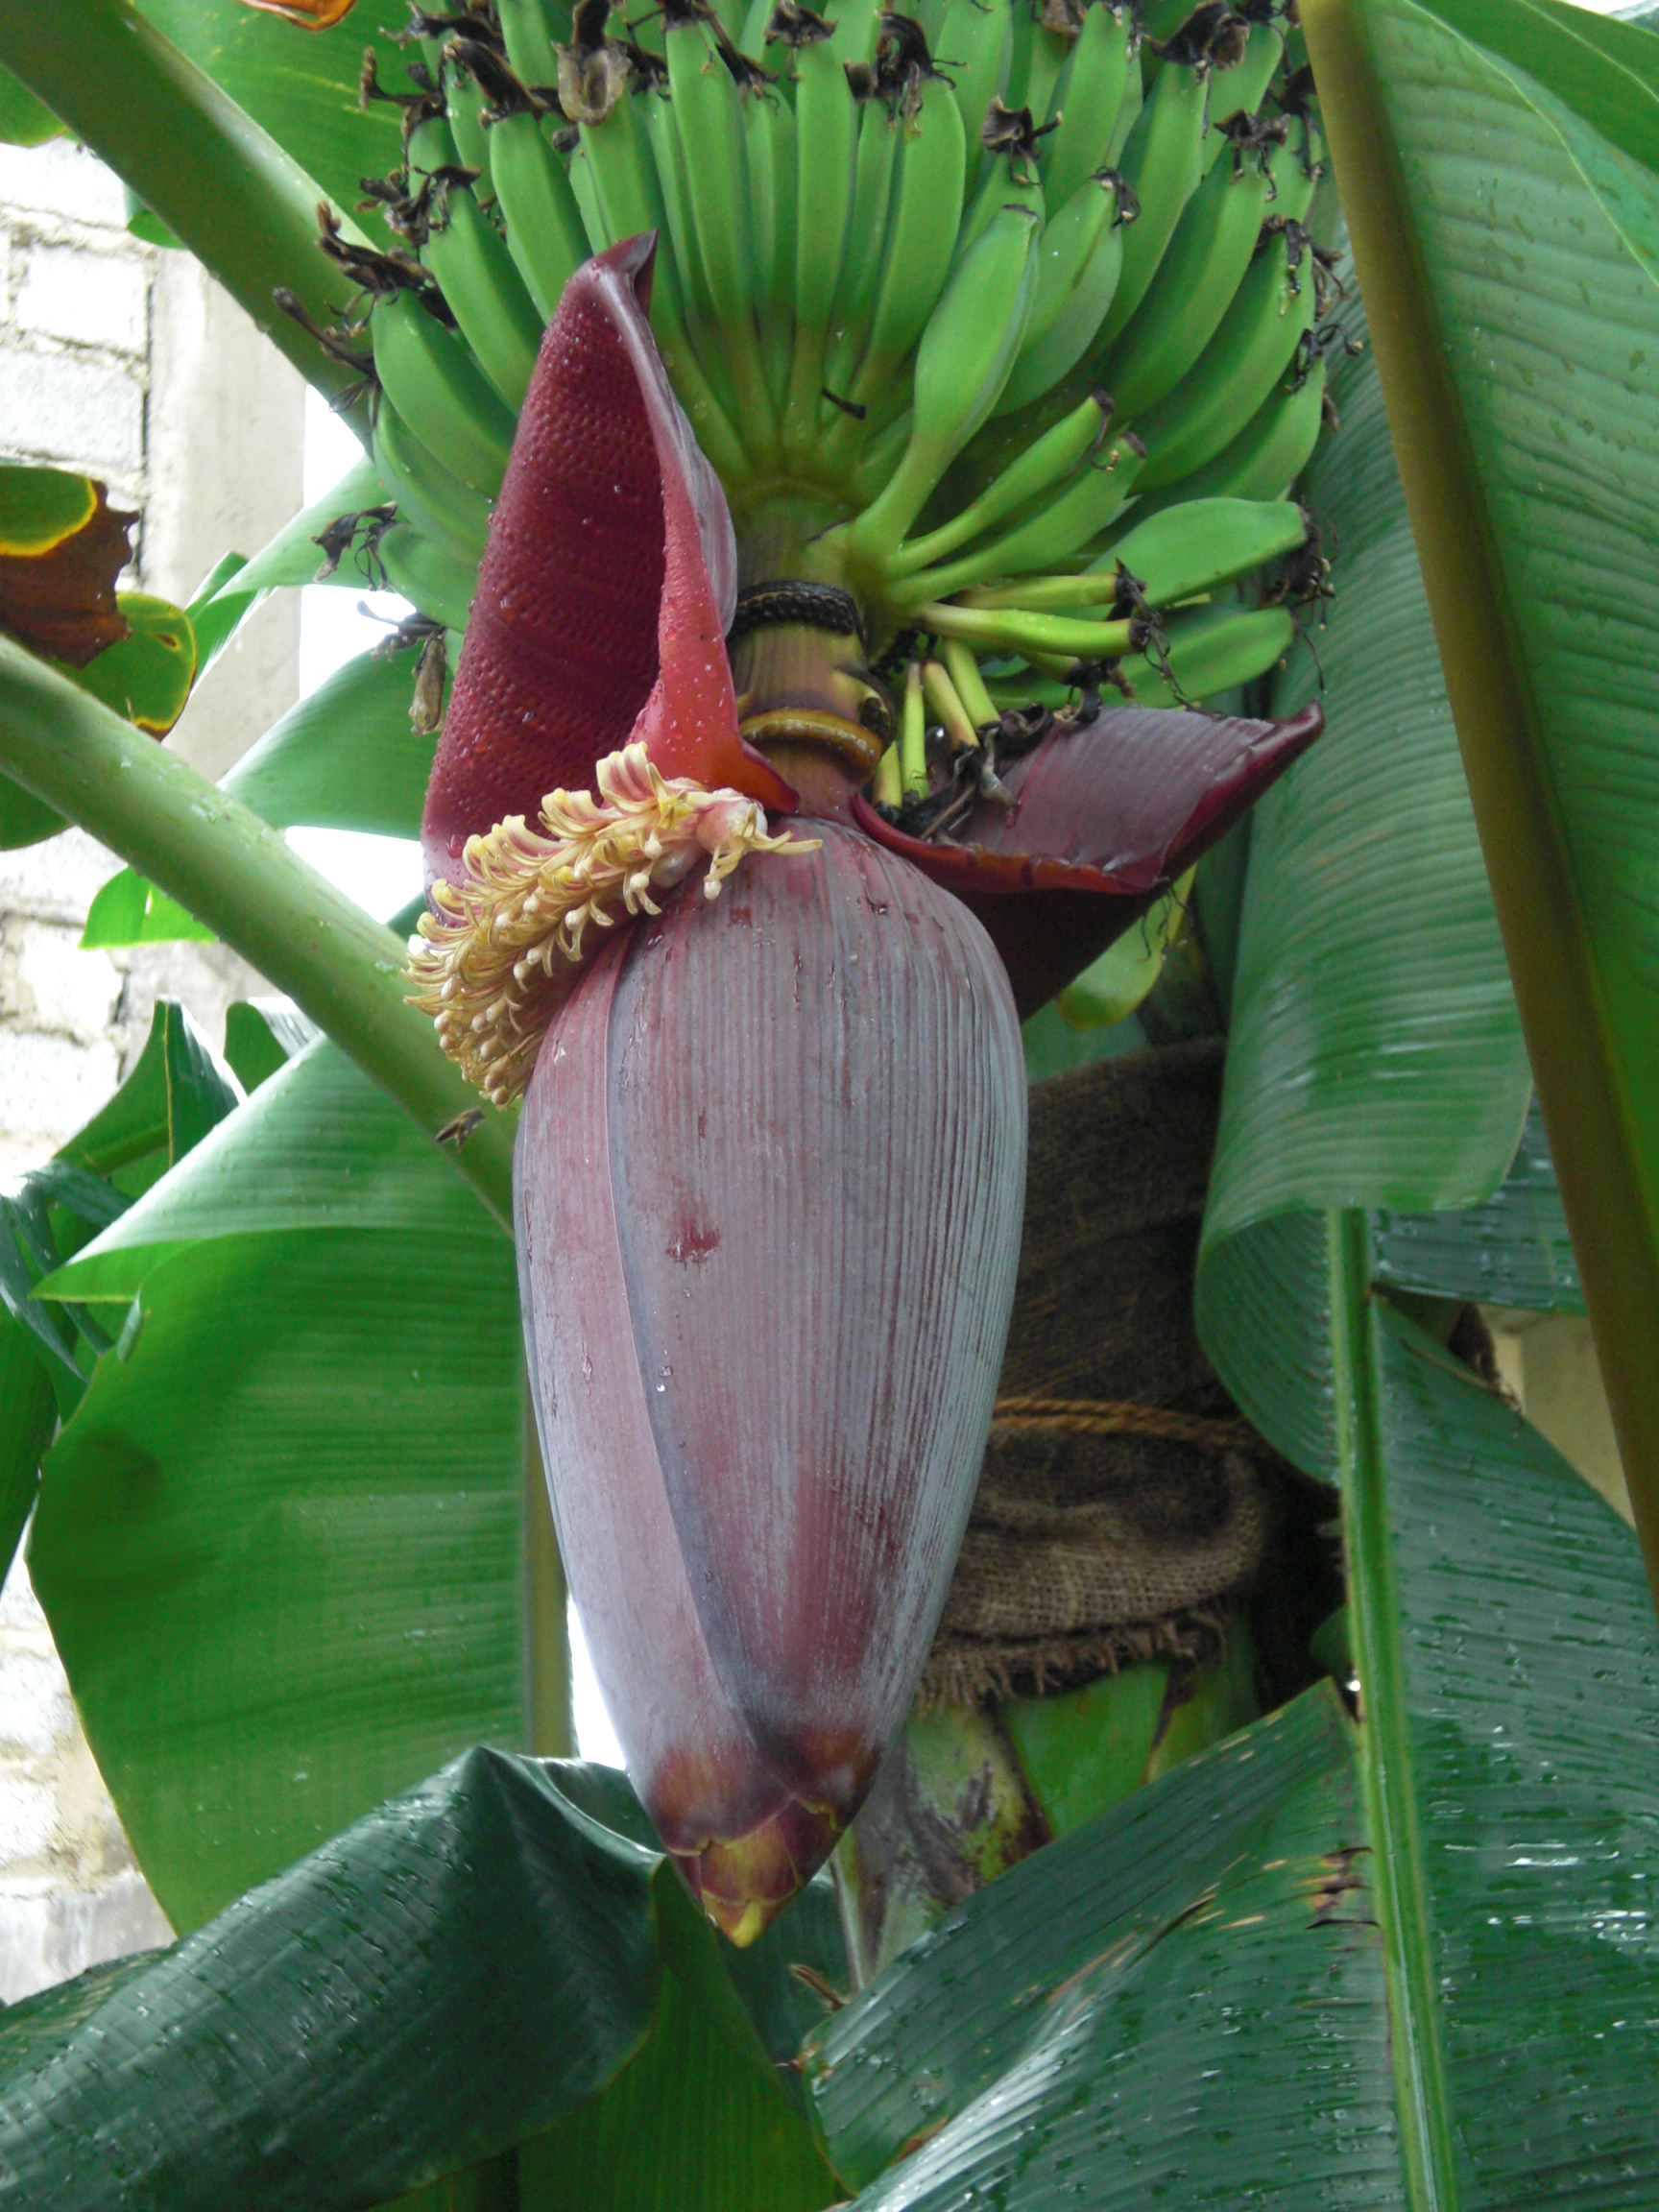 File Banana Fruits And Inflorescence Jpg Wikimedia Commons